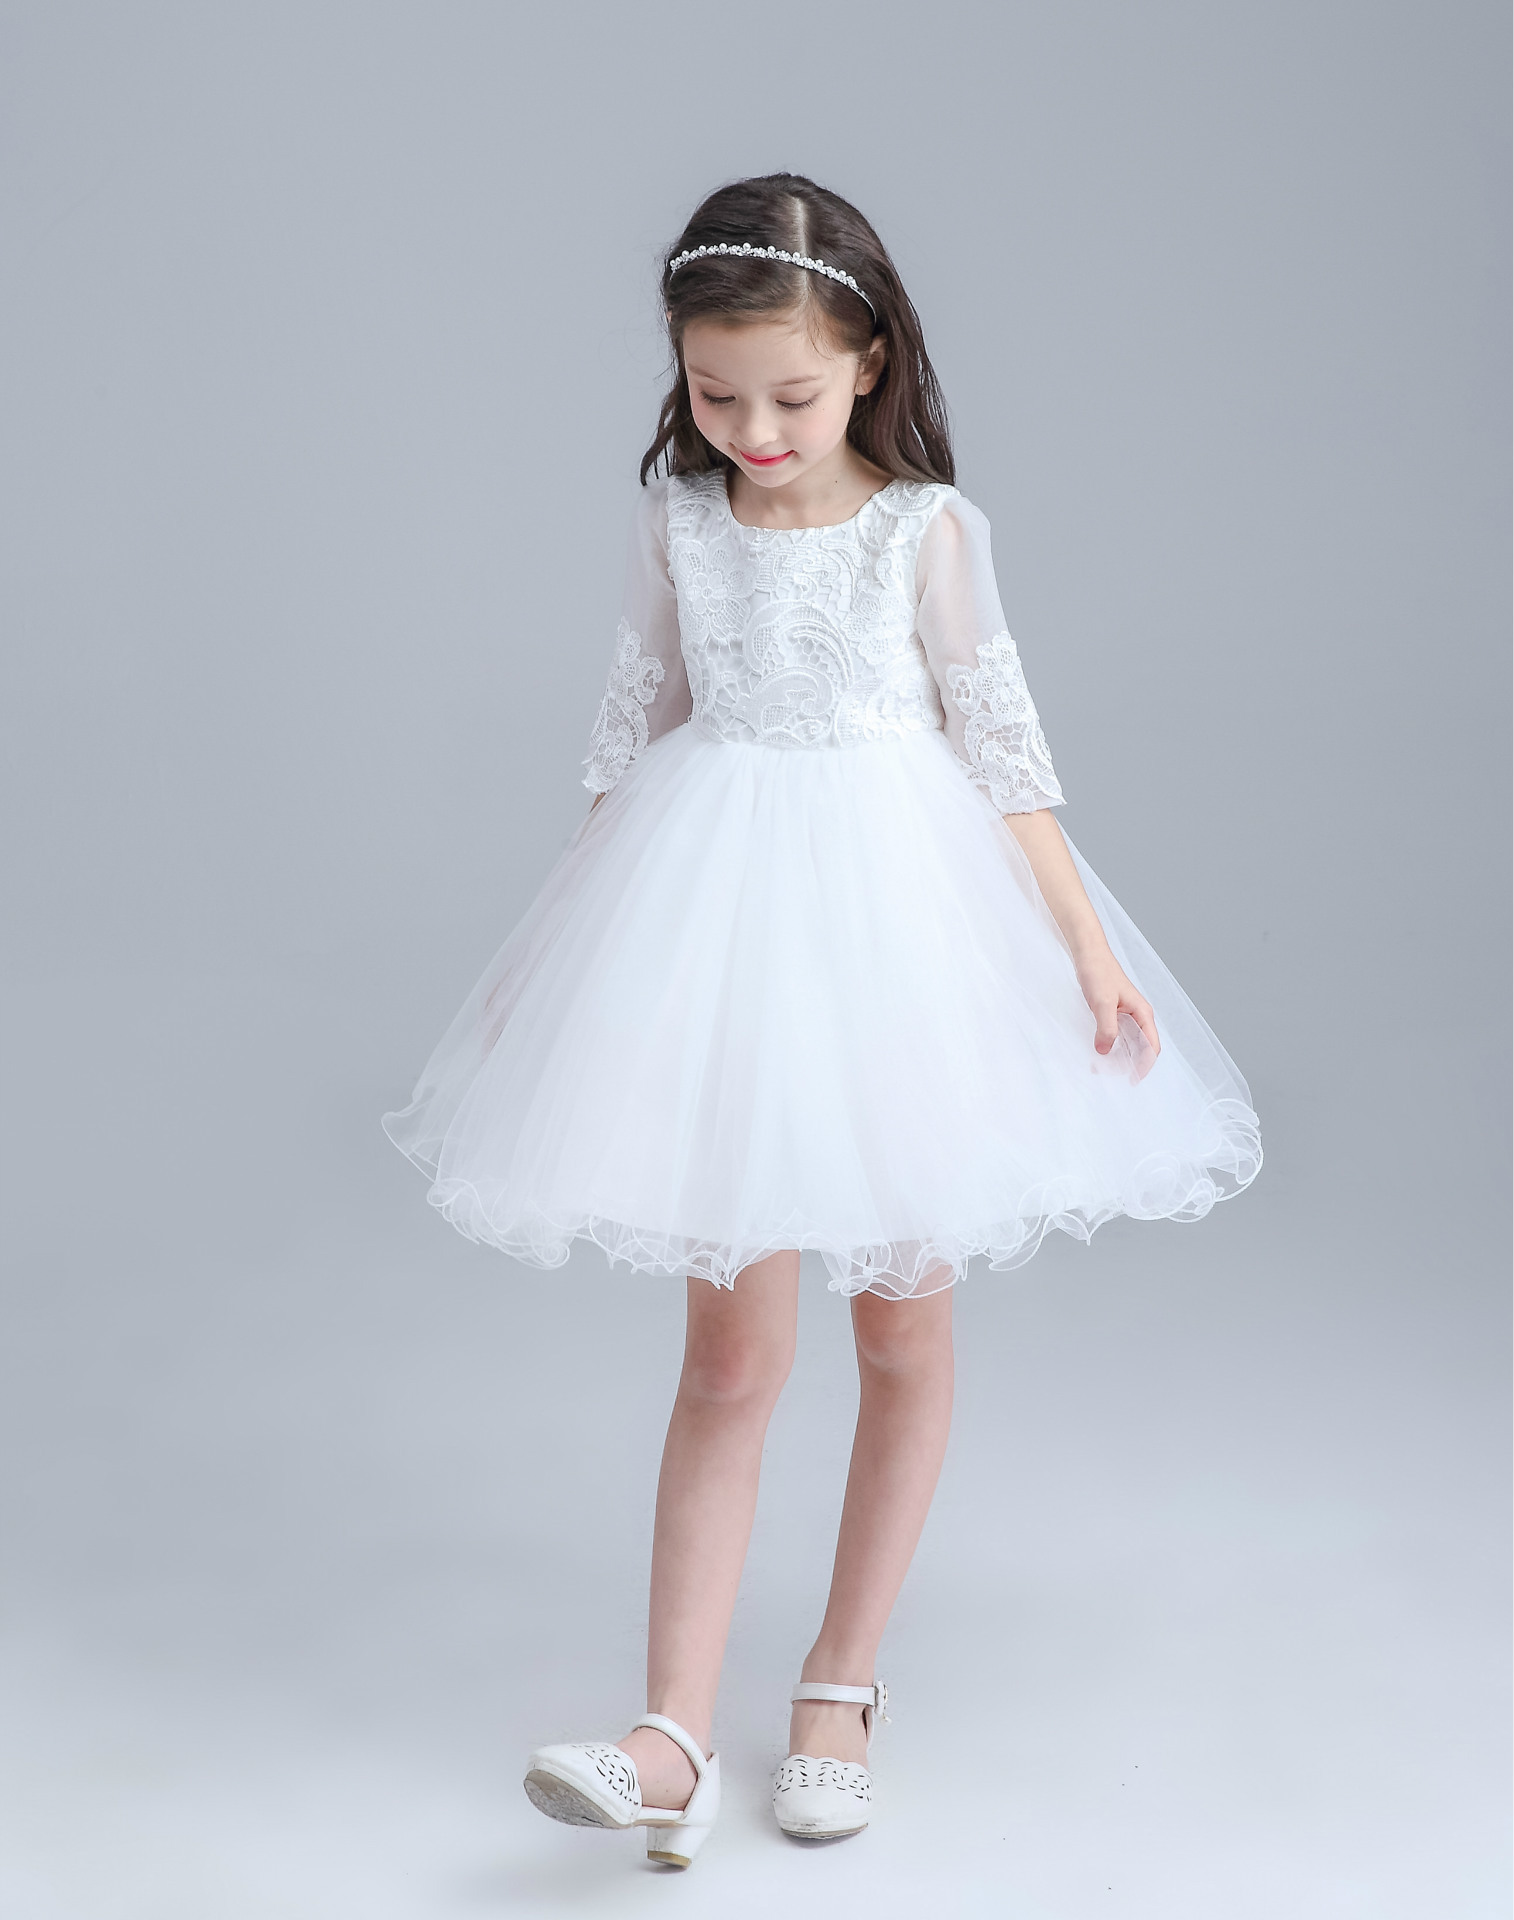 2016 Girls Summer Dress Kids Girls White Wedding Birthday Costume Flower Girl Dresses with Big Bow Teenage Ball Gowns 6pcs ink cartridge t2771 t2772 t2773 t2774 t2775 t2776 compatible for epson expression photo xp 750 760 850 860 950